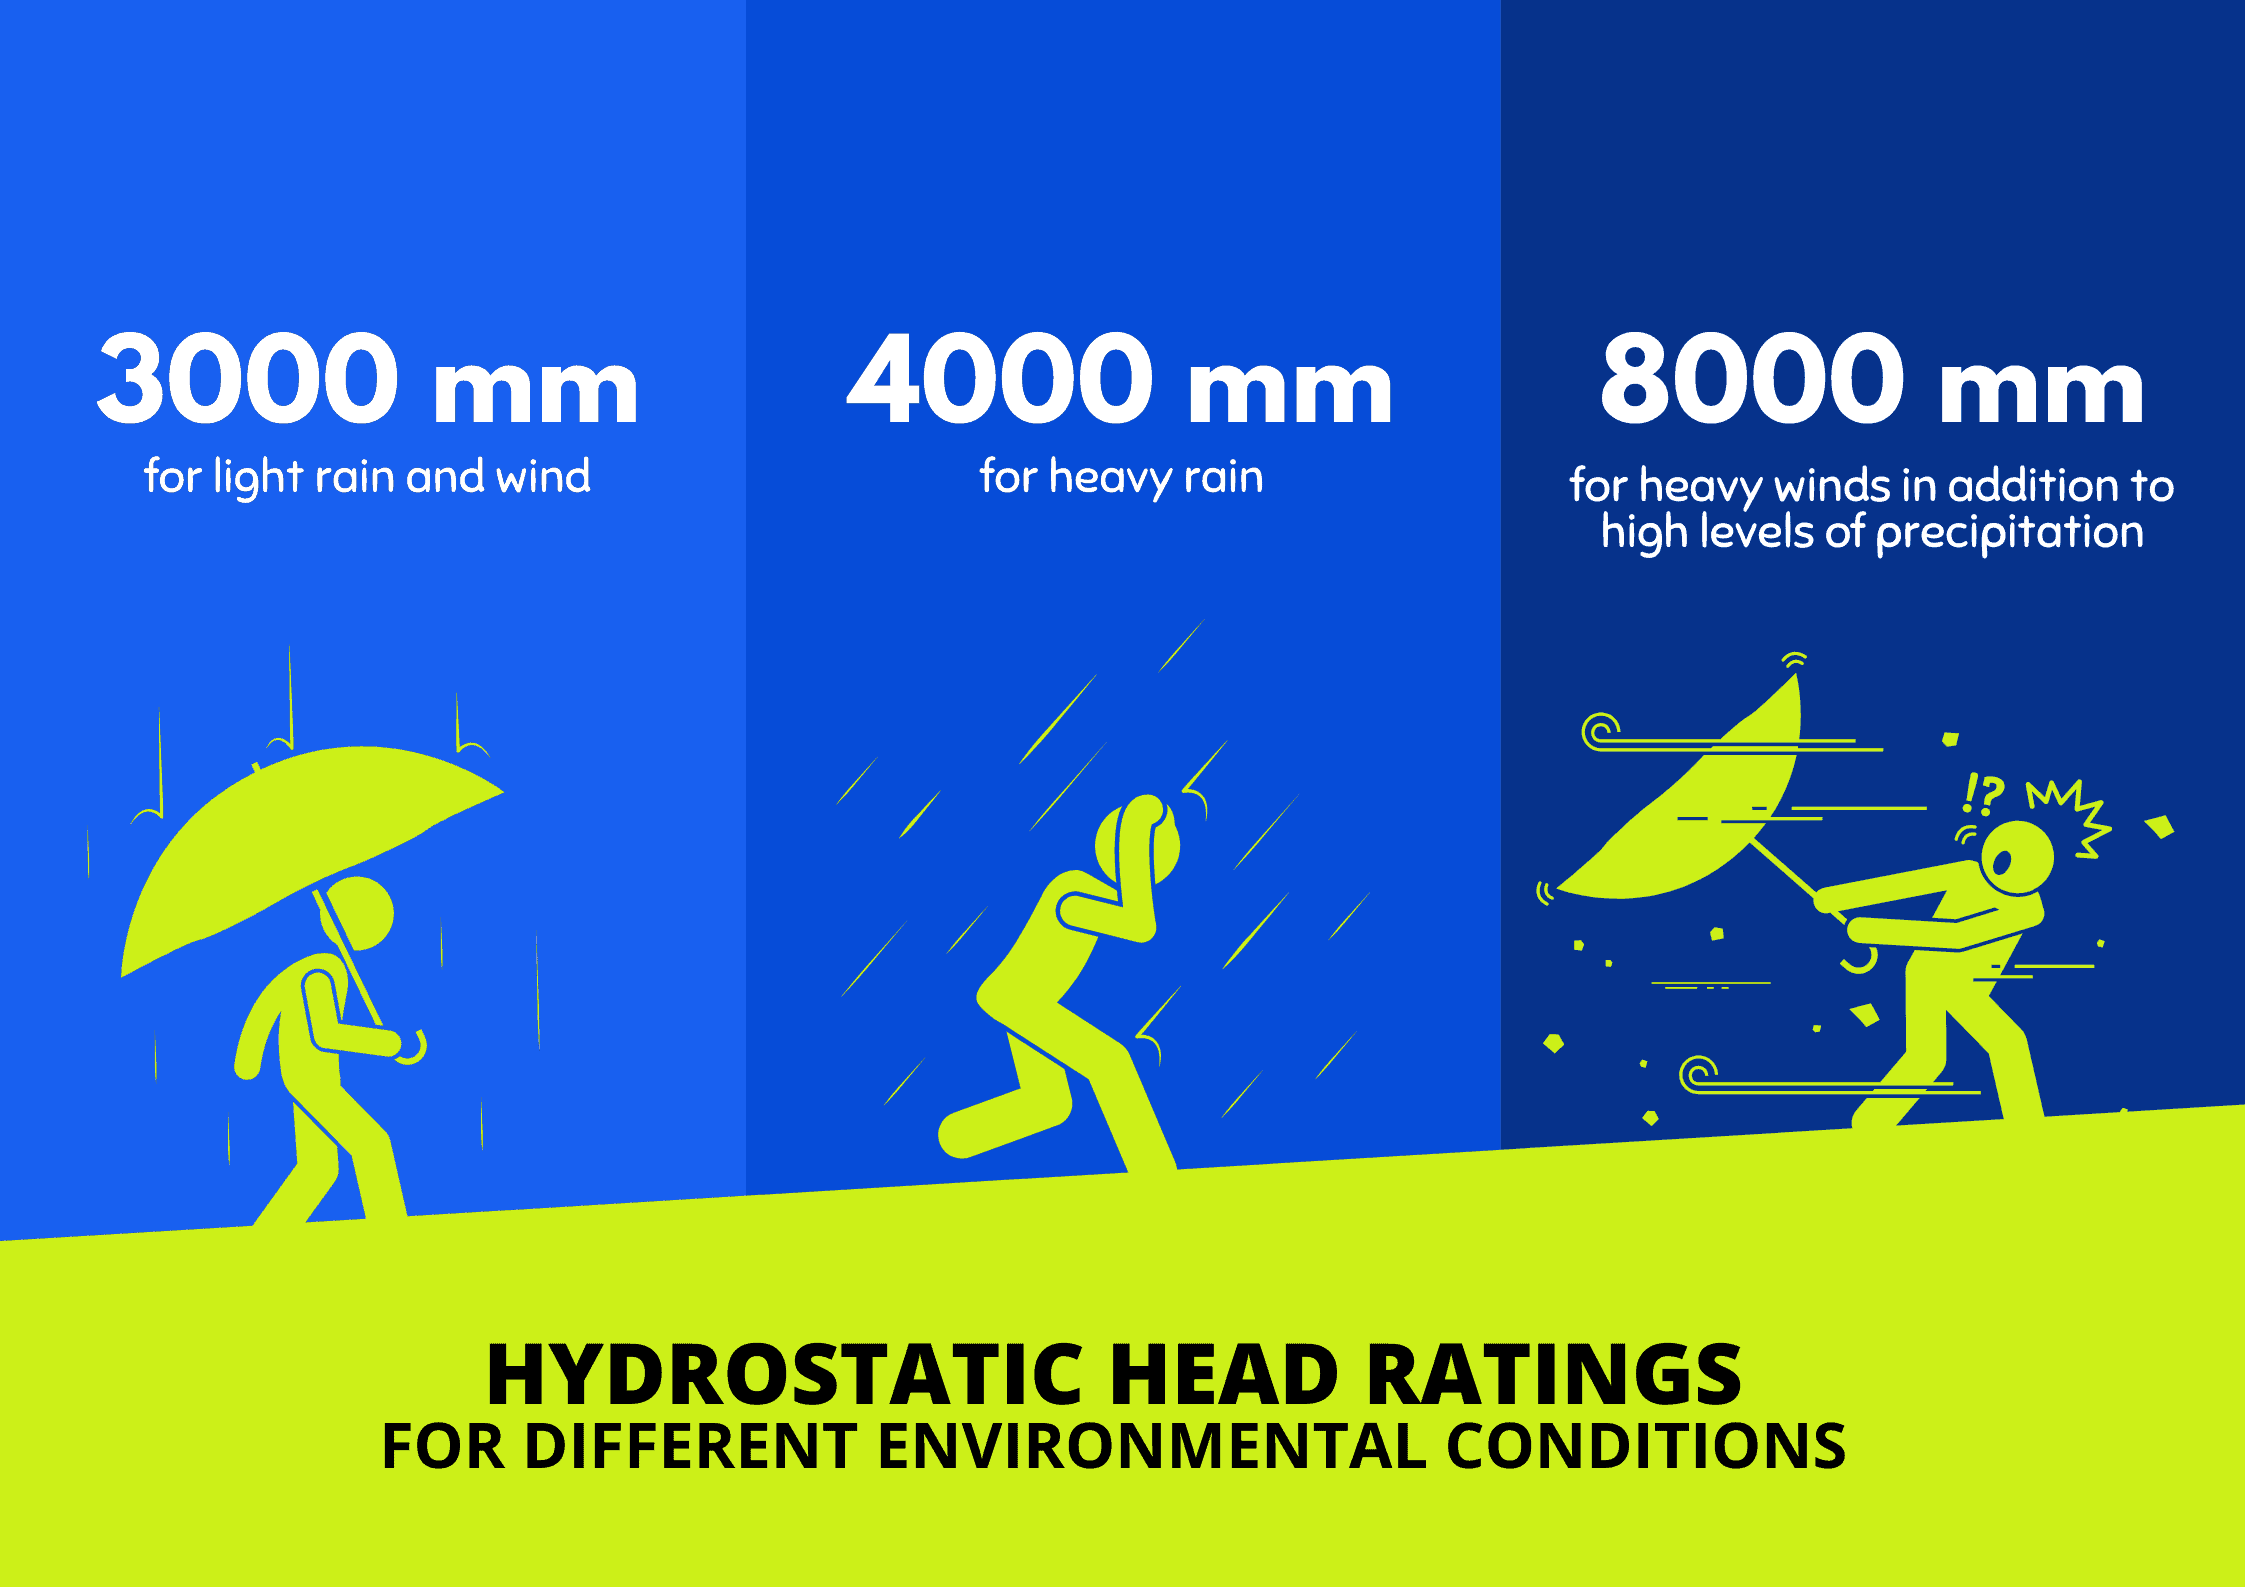 Hydrostatic Head Ratings for different environmental conditions